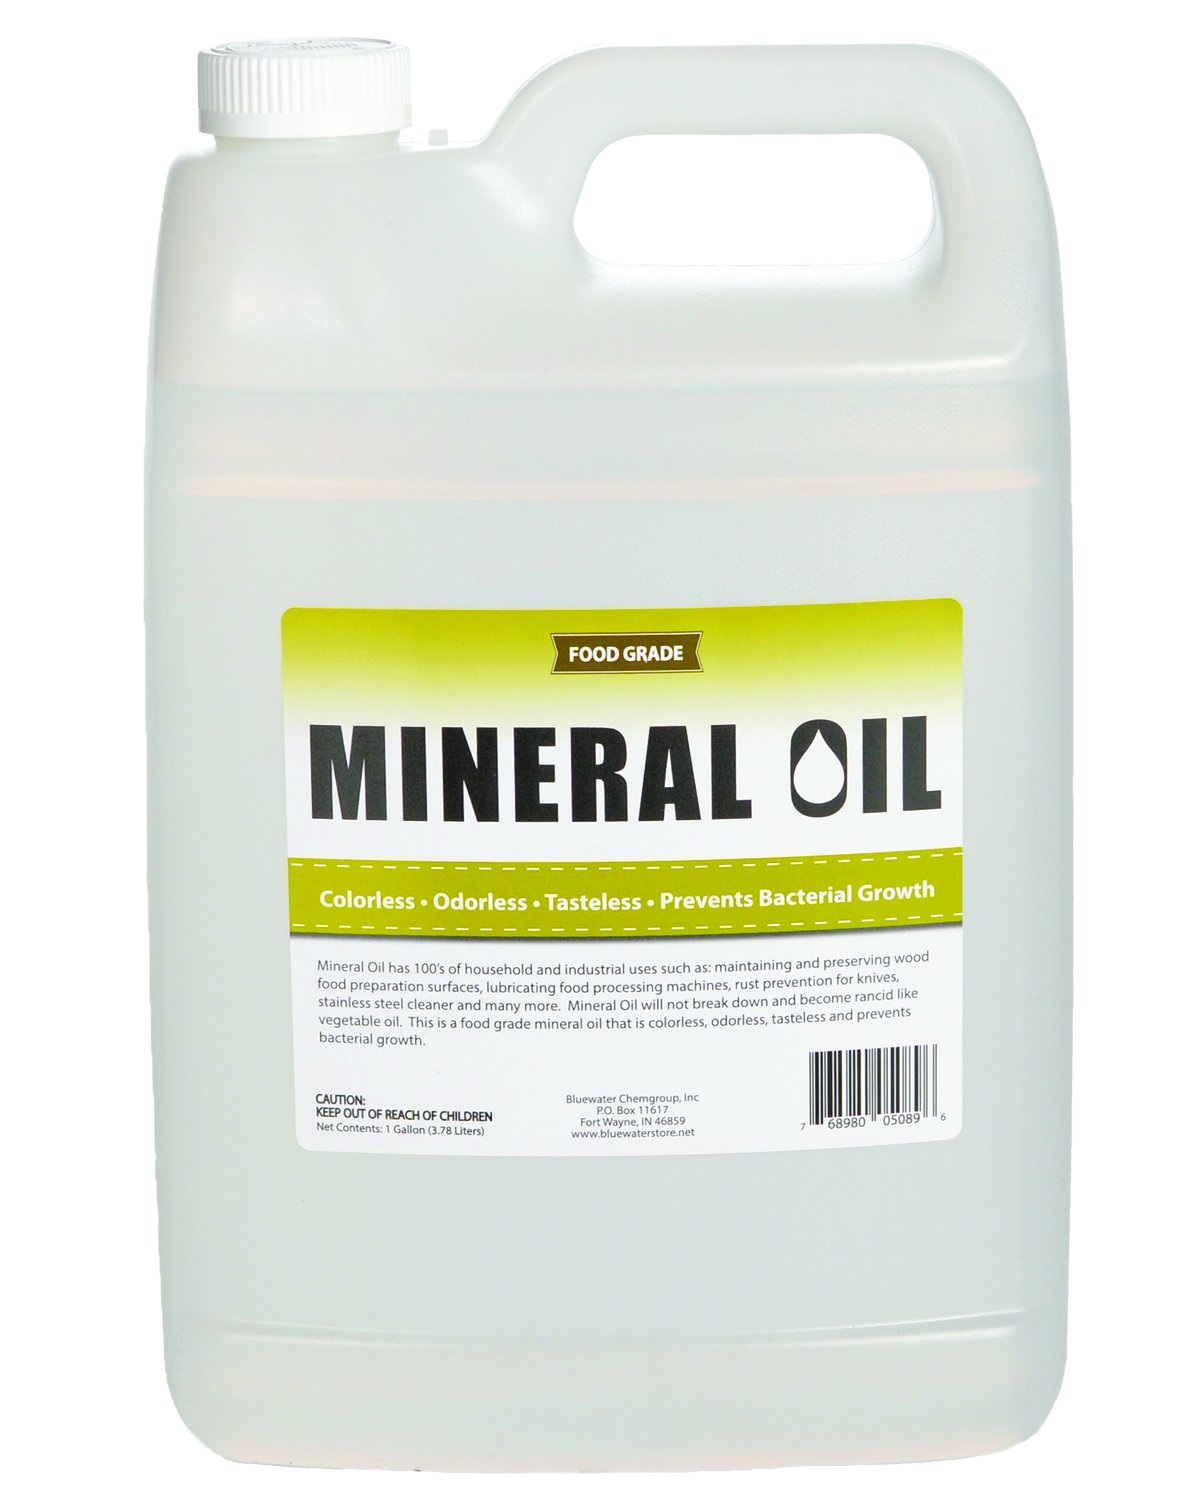 Watch Mineral Oil Reviews video